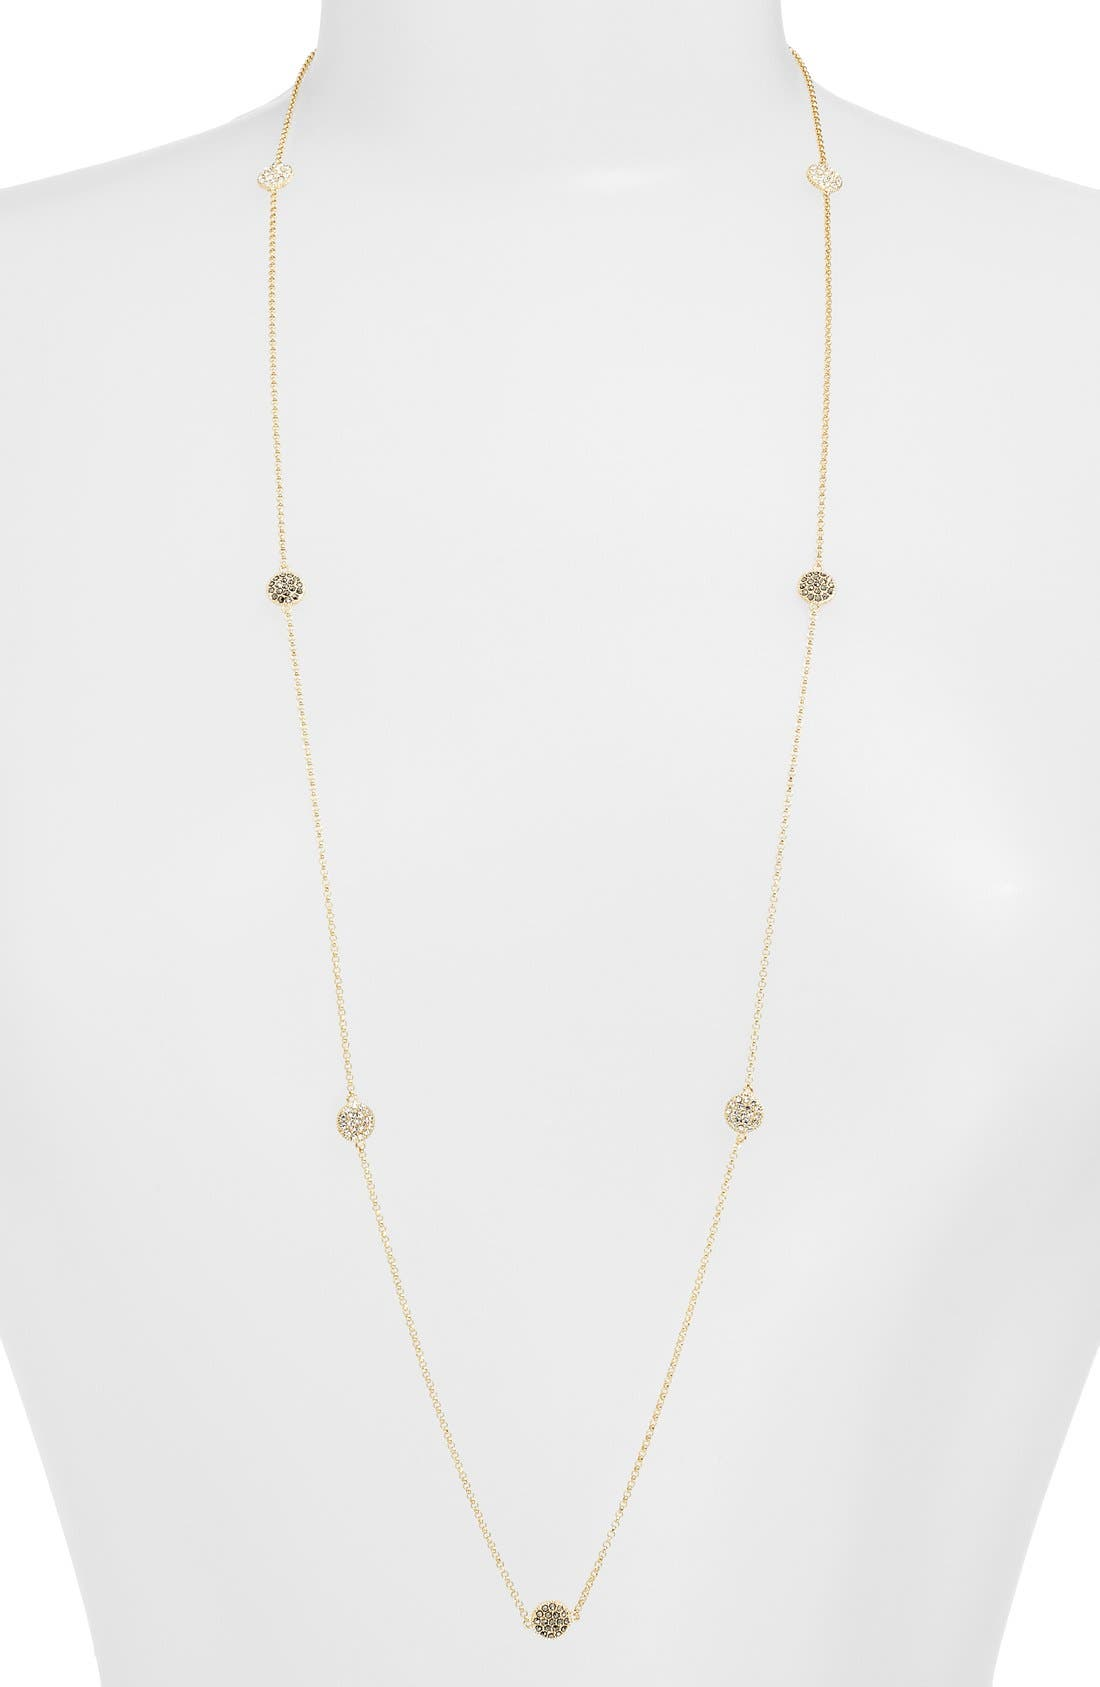 Judith Jack Long Illusion Necklace